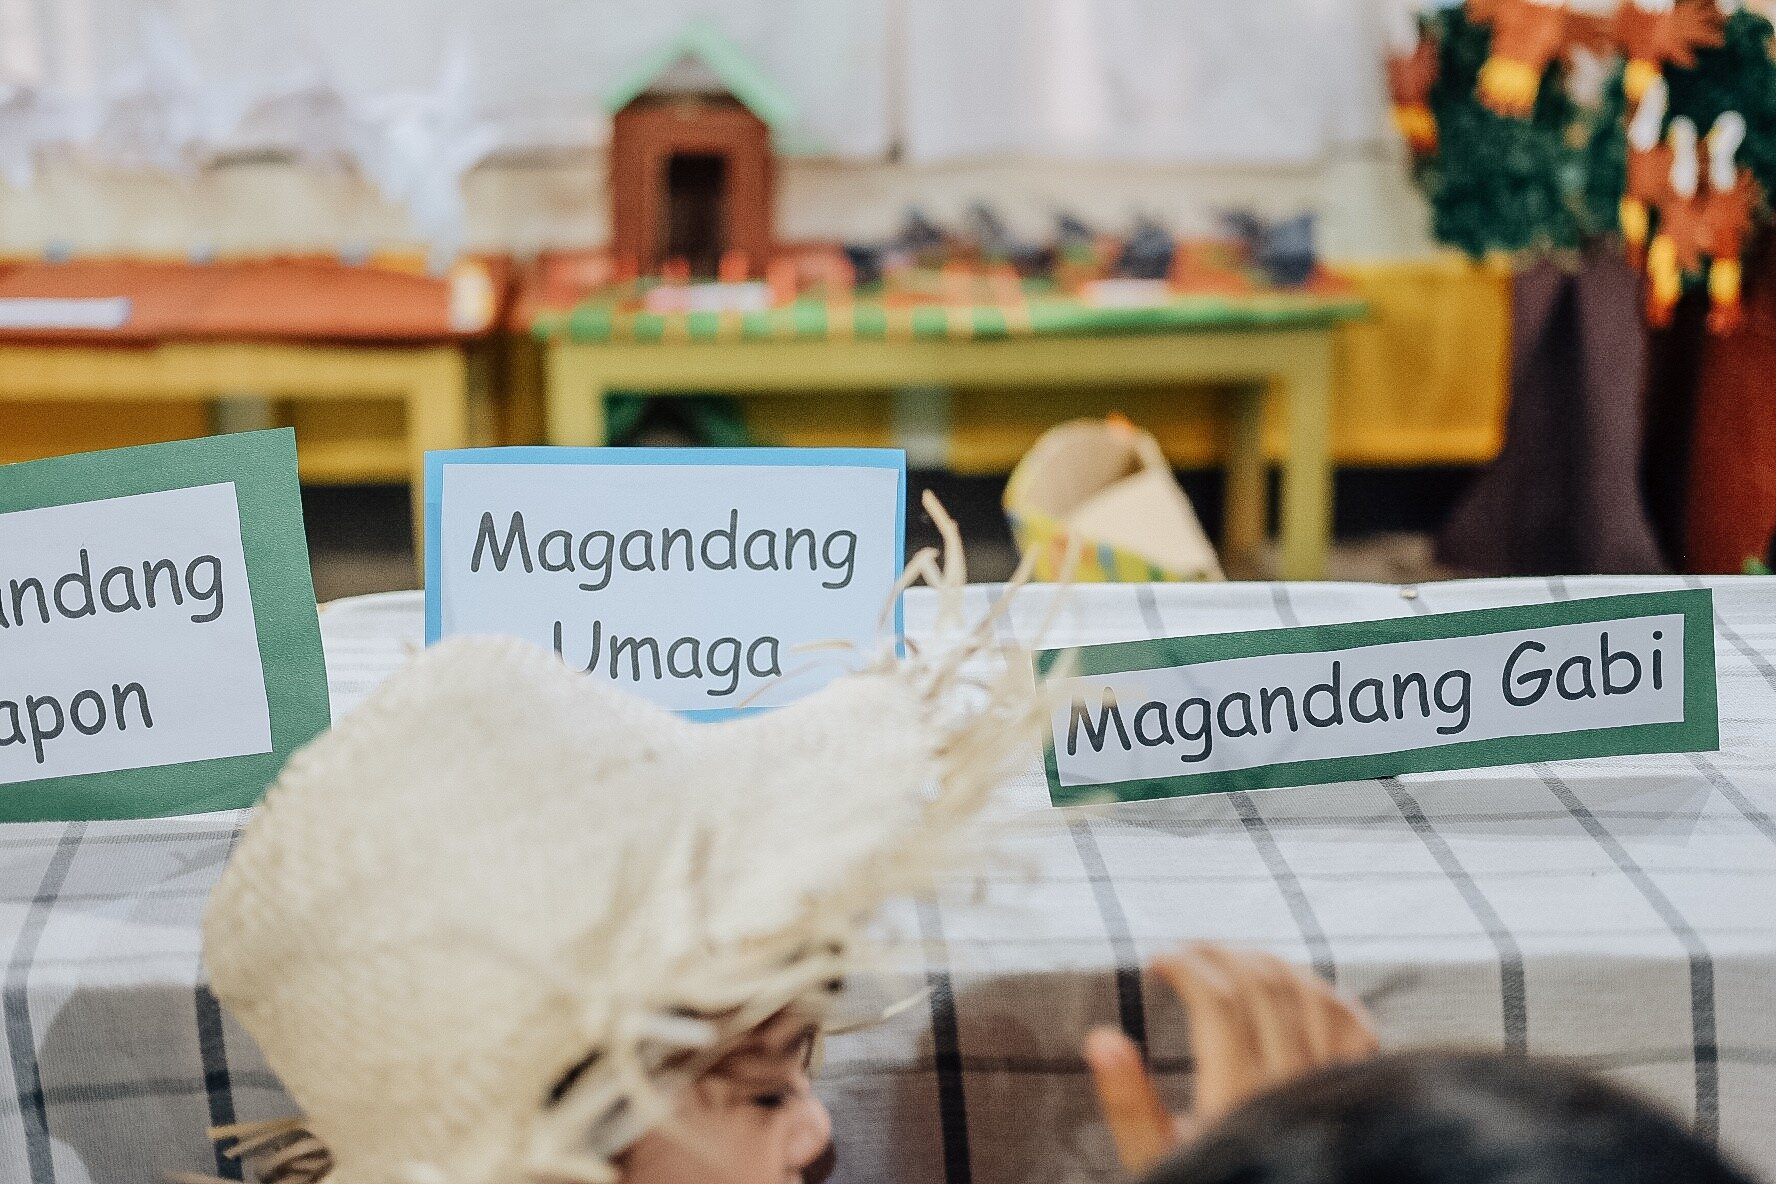 label stuff with filipino words or phrases in the house - You can create flash cards, or even note cards where when your child sees it, he can associate concepts and objects with the Filipino words you want him to learn.